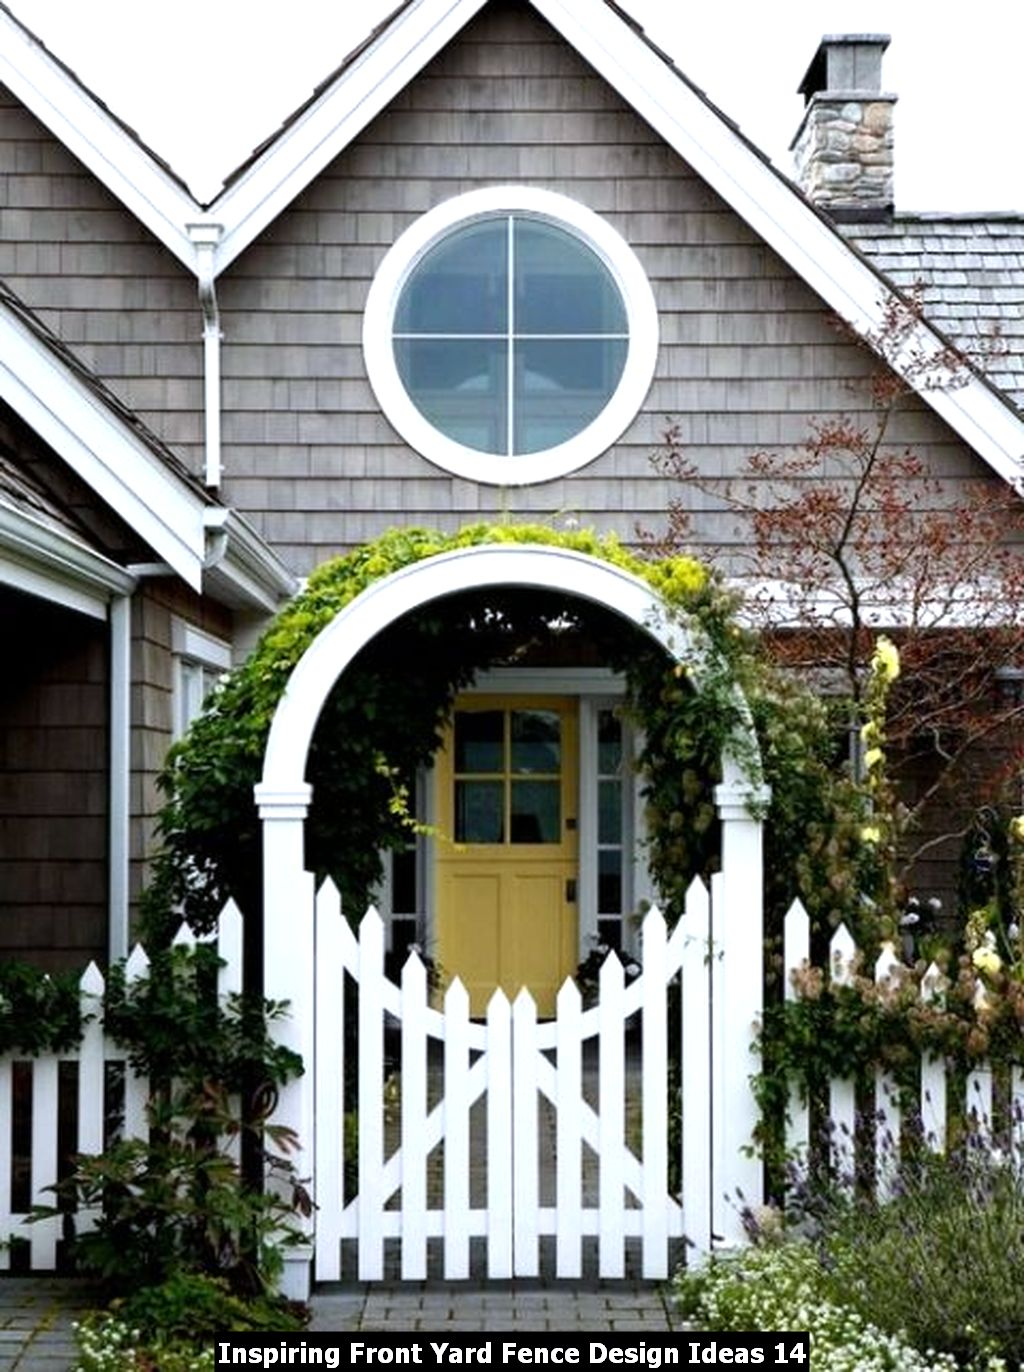 Inspiring Front Yard Fence Design Ideas 14